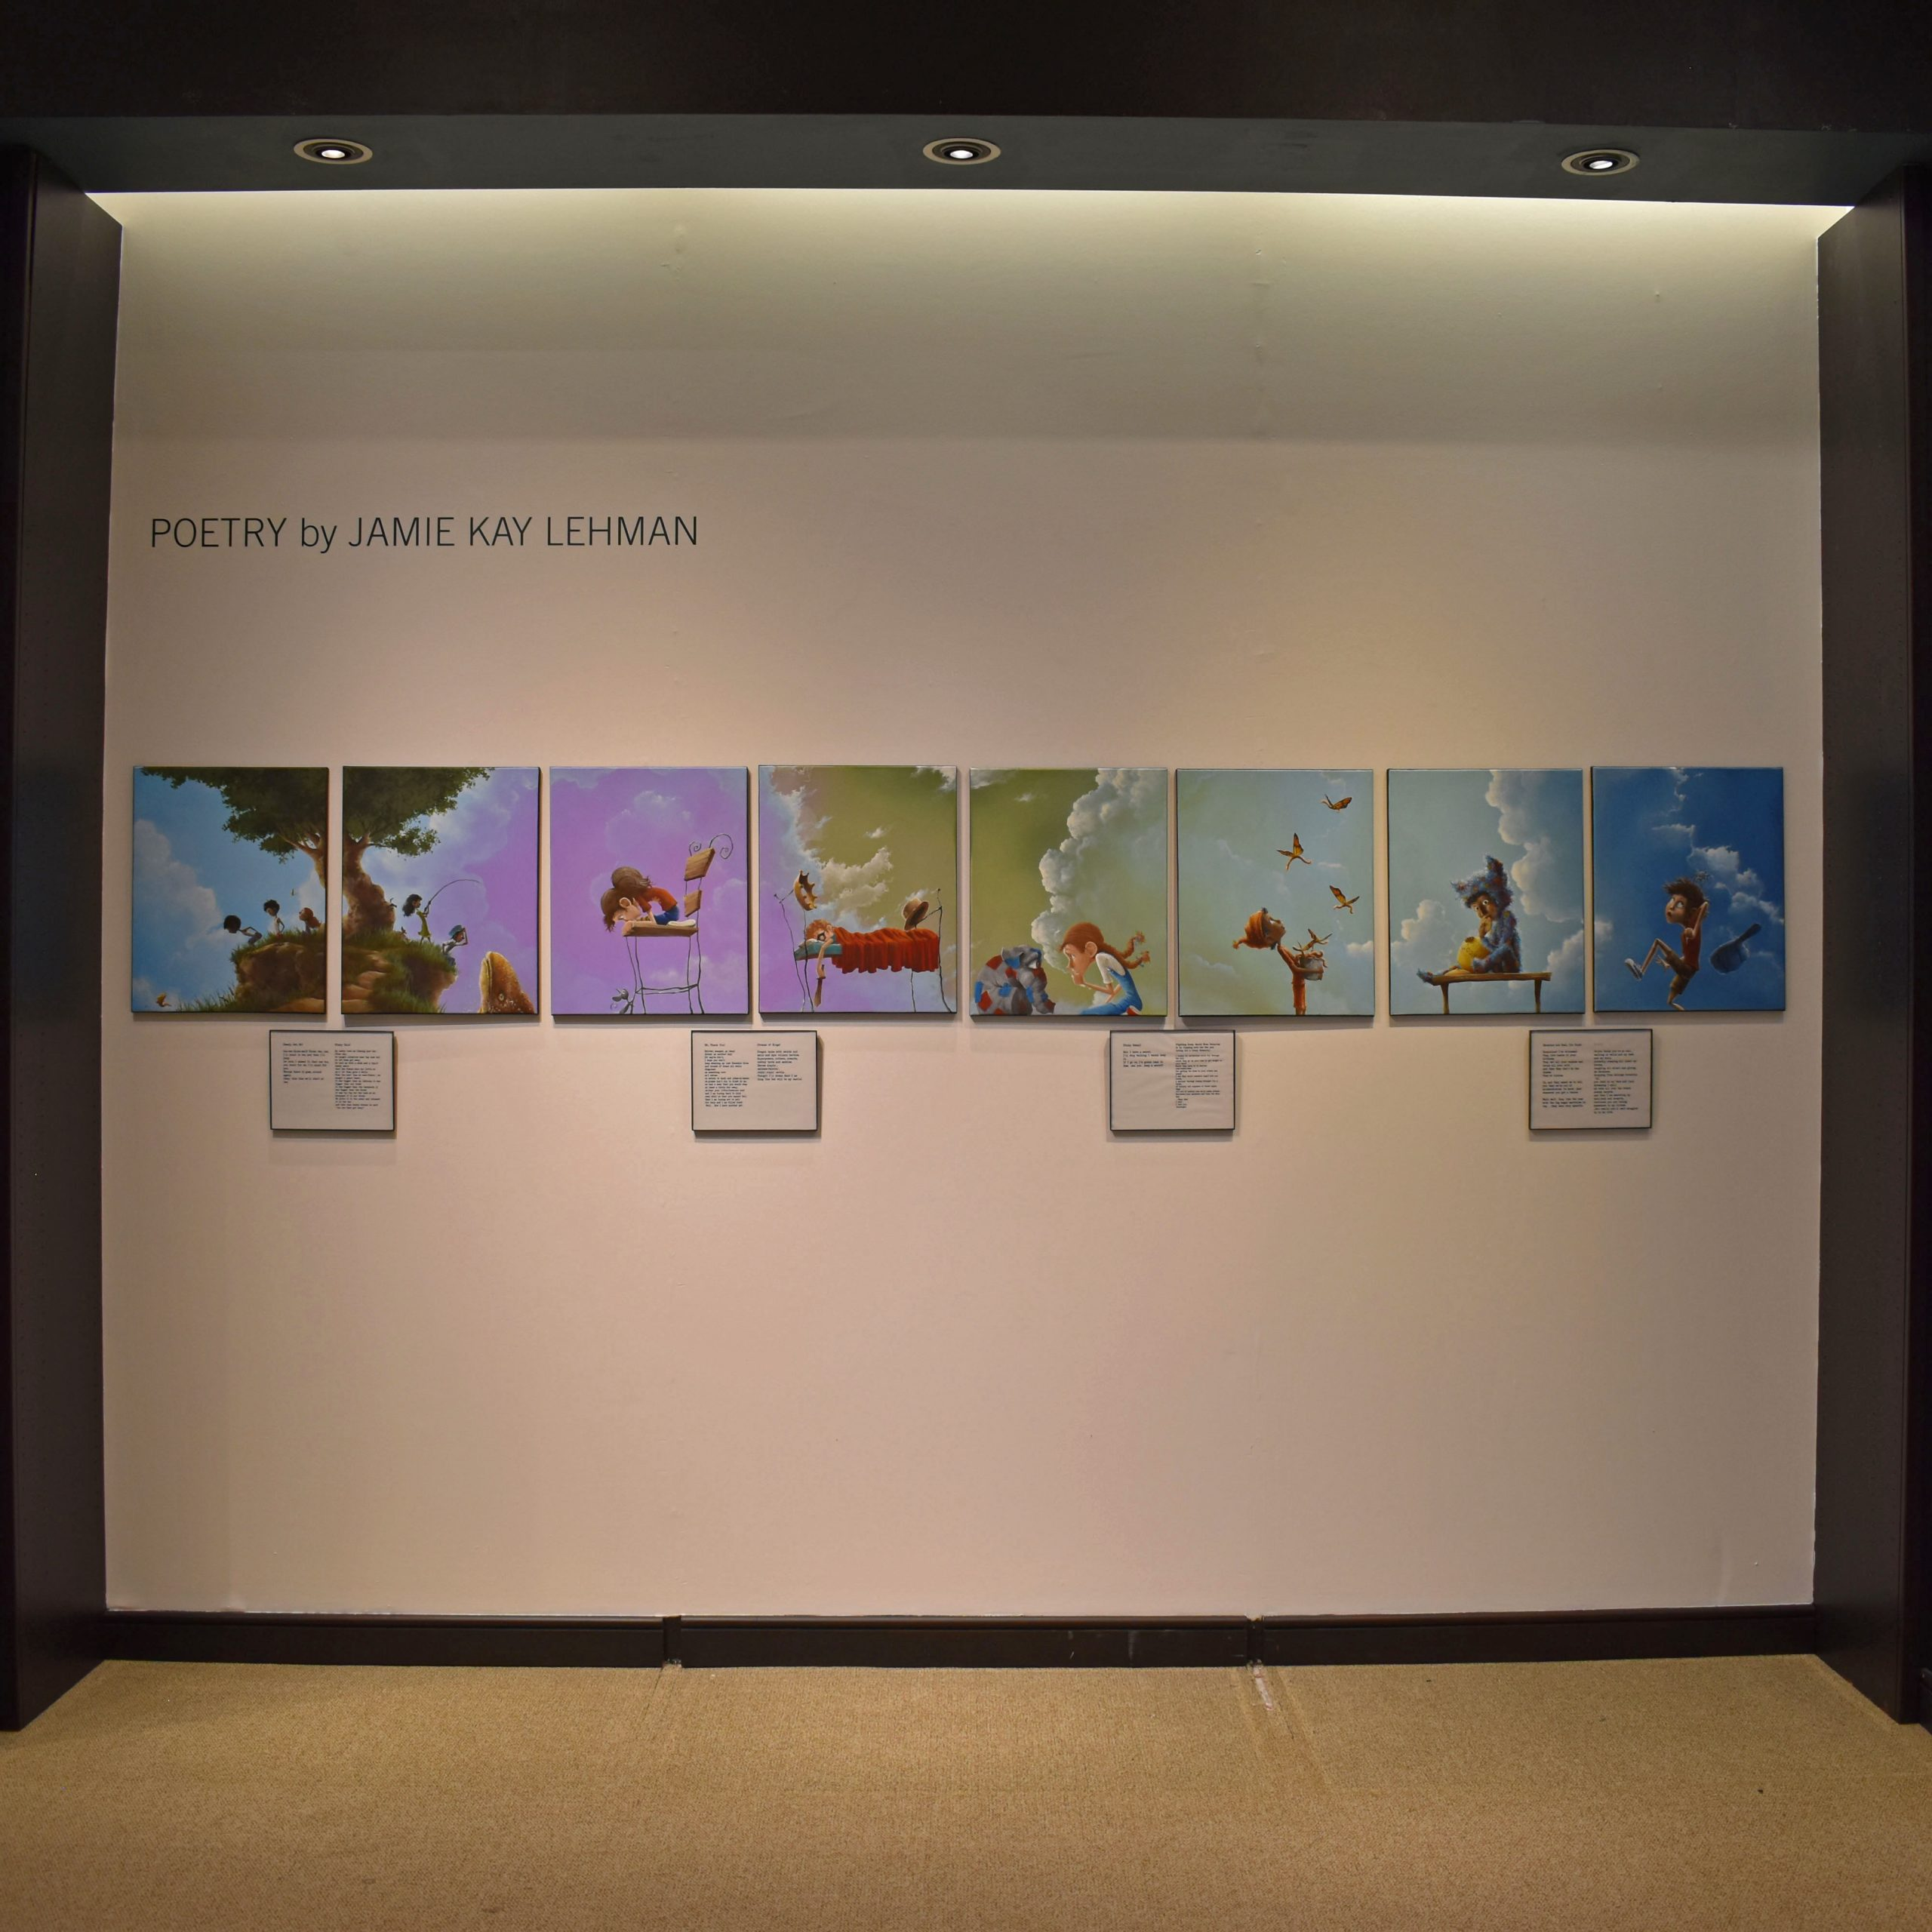 Selection of photos in the gallery with title card Poetry by Jamie Kay Lehman